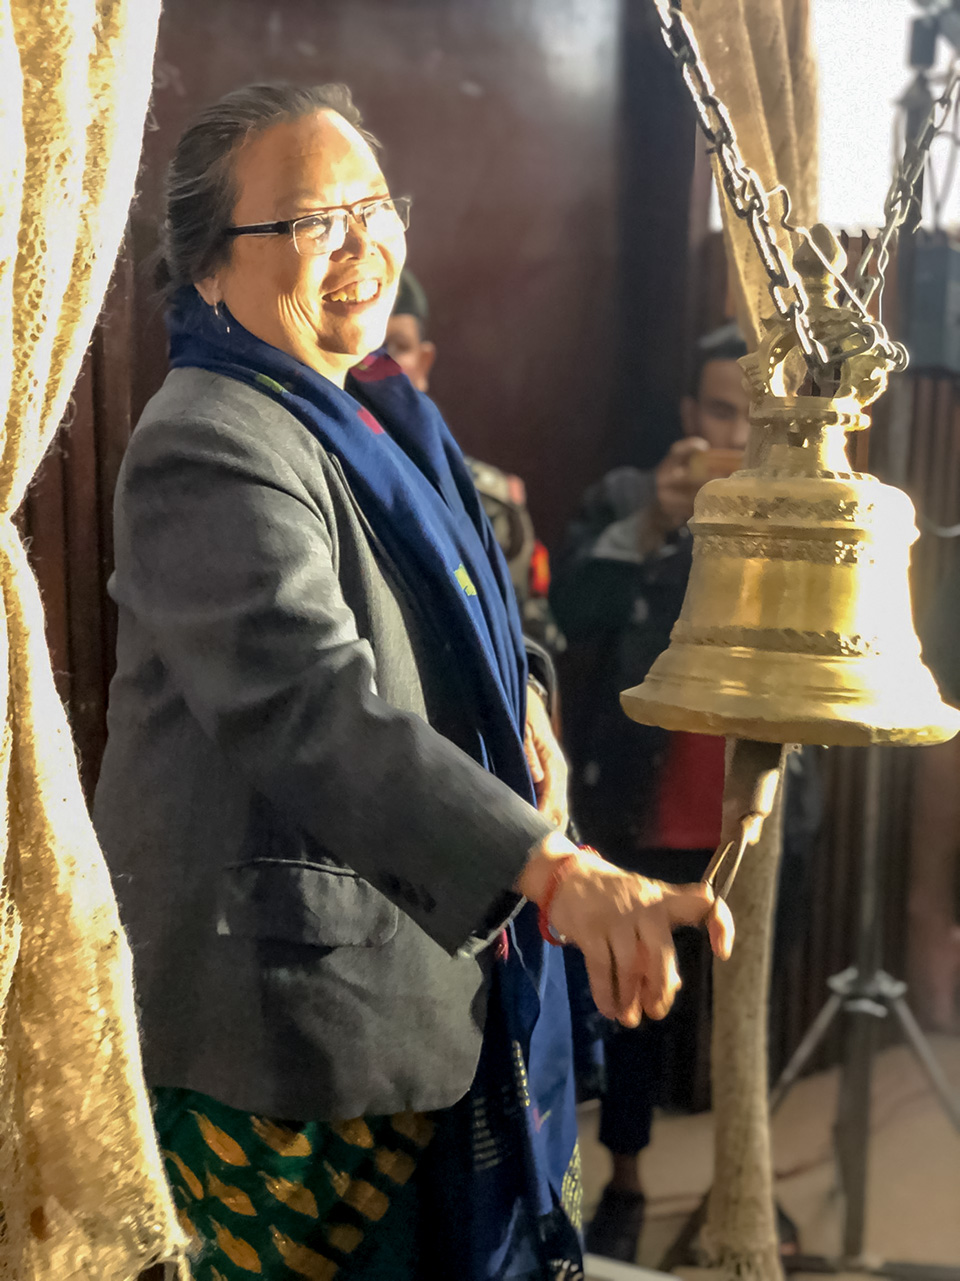 Tham Maya Thapa, former Minister of Women, Children and Senior Citizen, ringing the Nepali bell to launch the national consultation for Beijing+25 review organized by National Network of Beijing Review Nepal (NNBN) with UN Women's support. Photo: UN Women/Naresh Newar